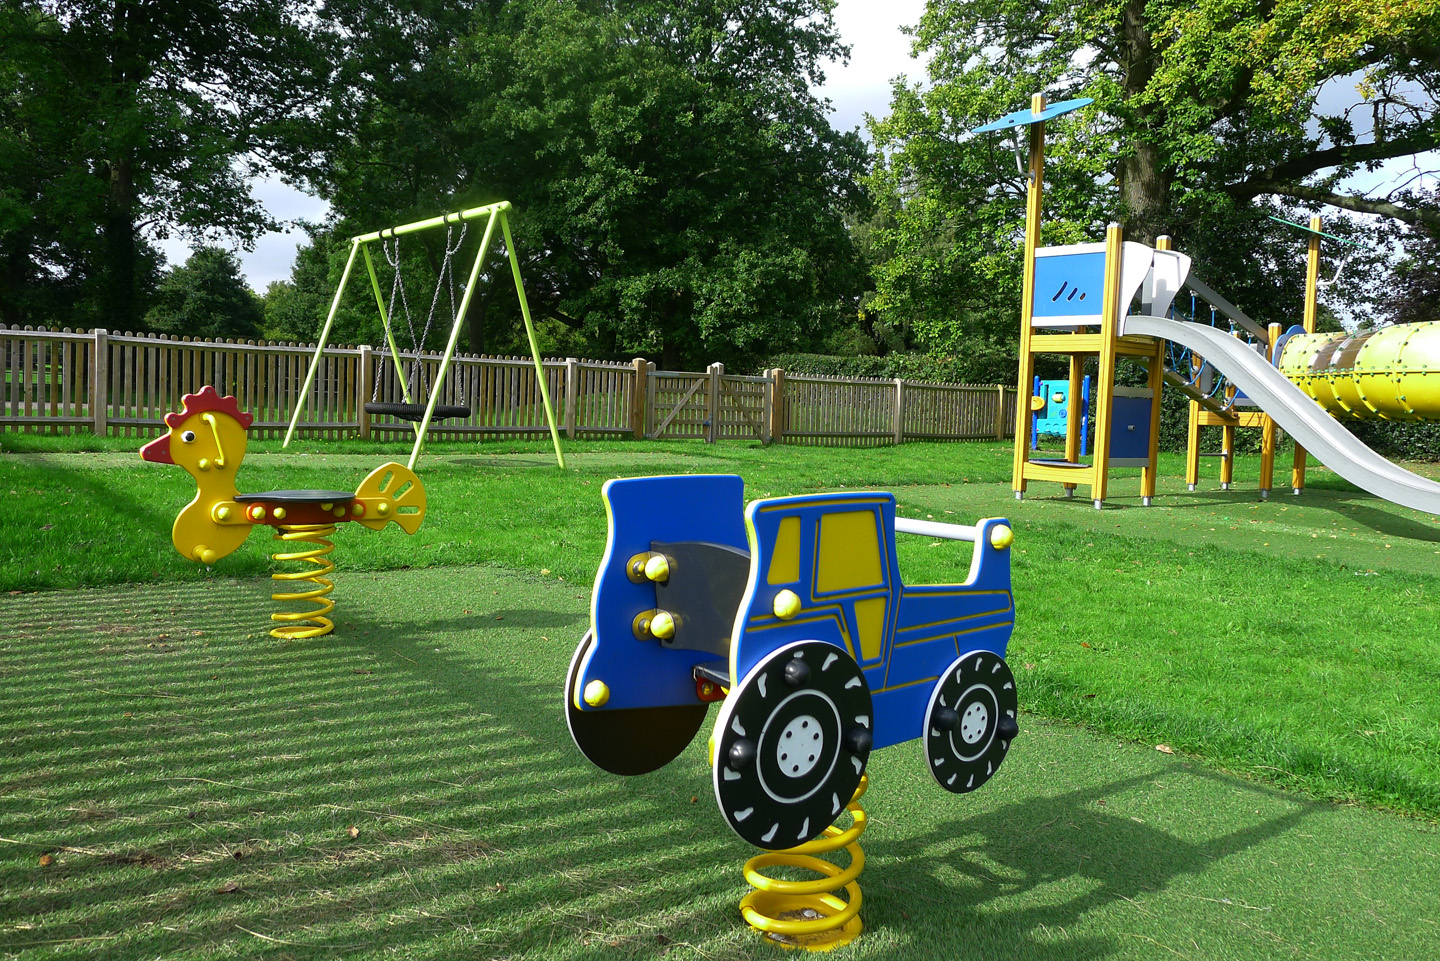 childrens play area featuring swings and slide